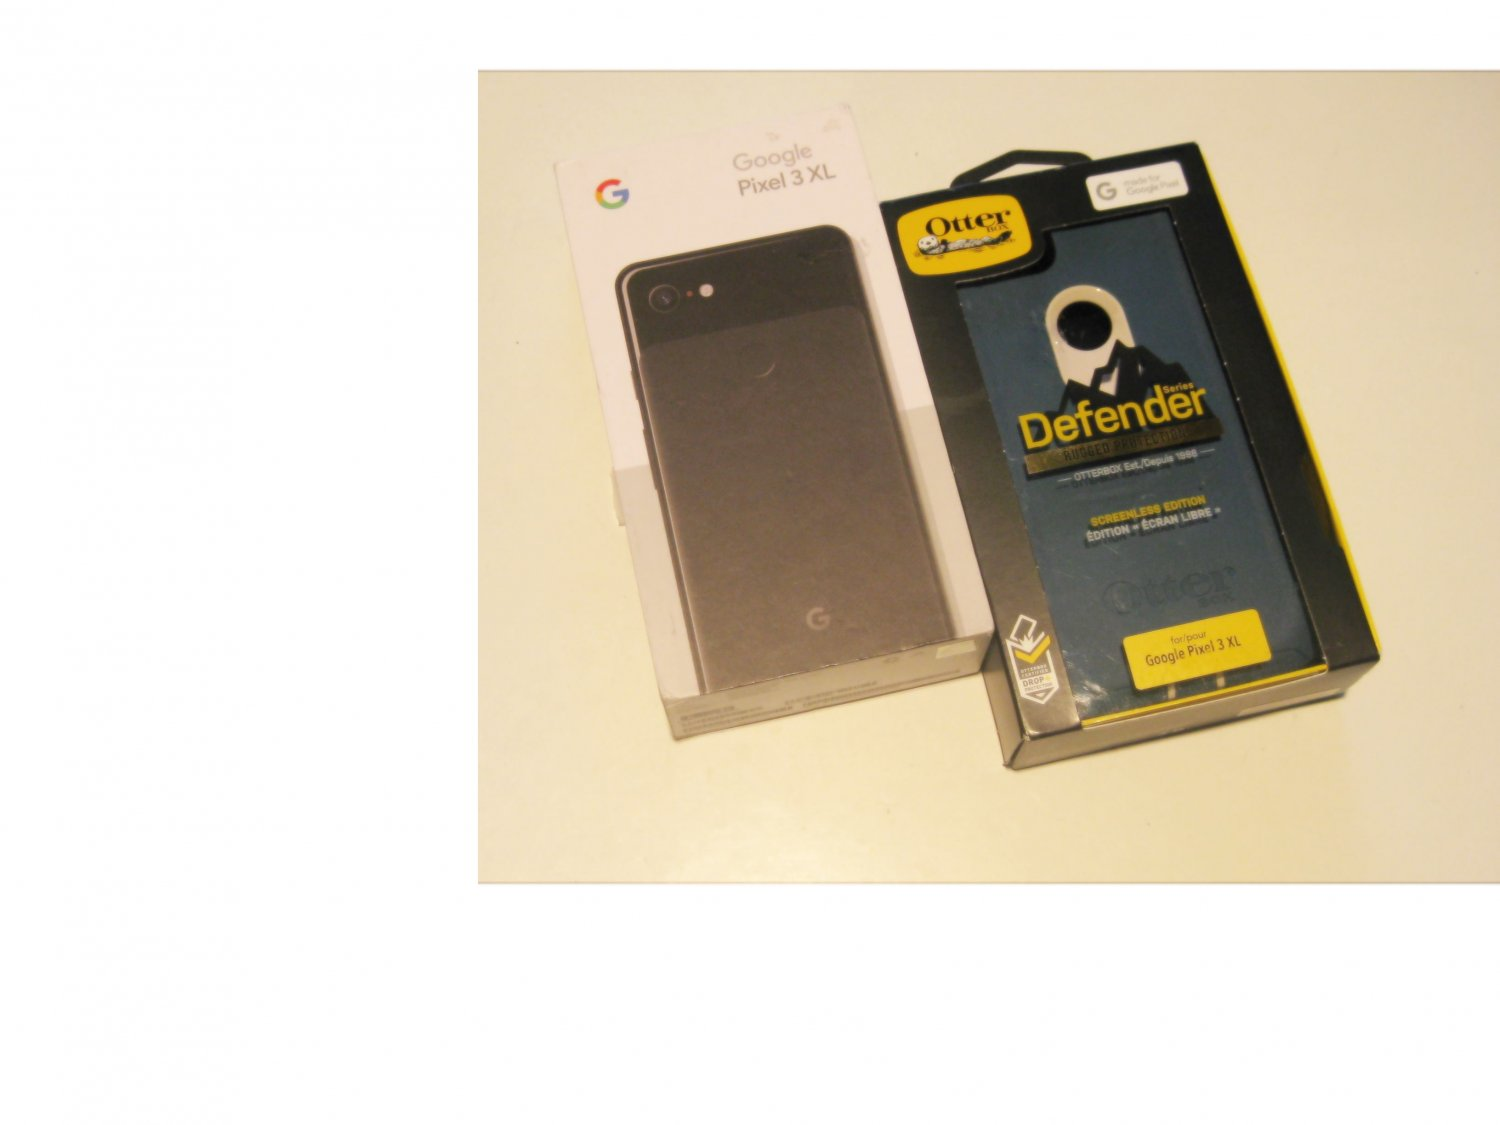 9.3/10  Sprint Google  Pixel 3 XL  64GB Bundle!!